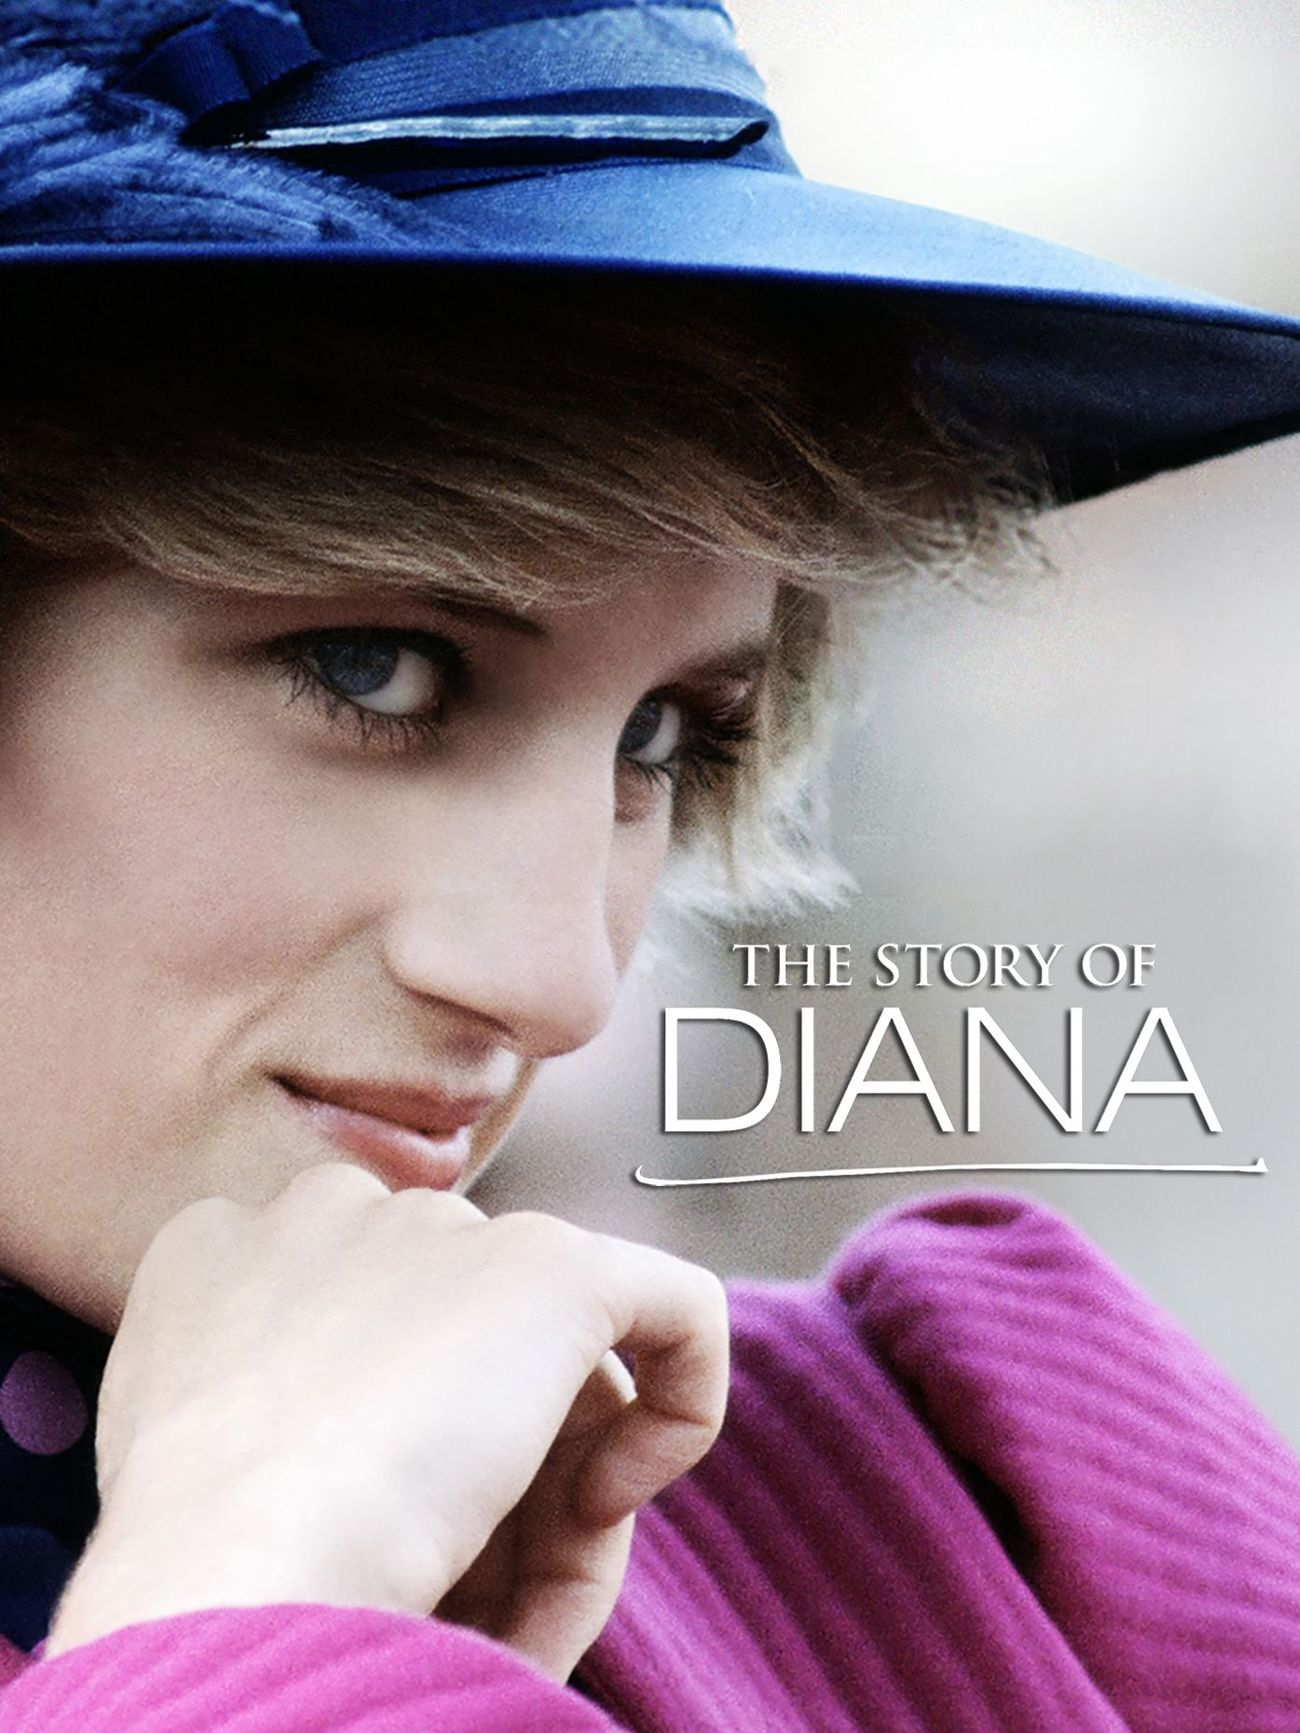 The Story of Diana.